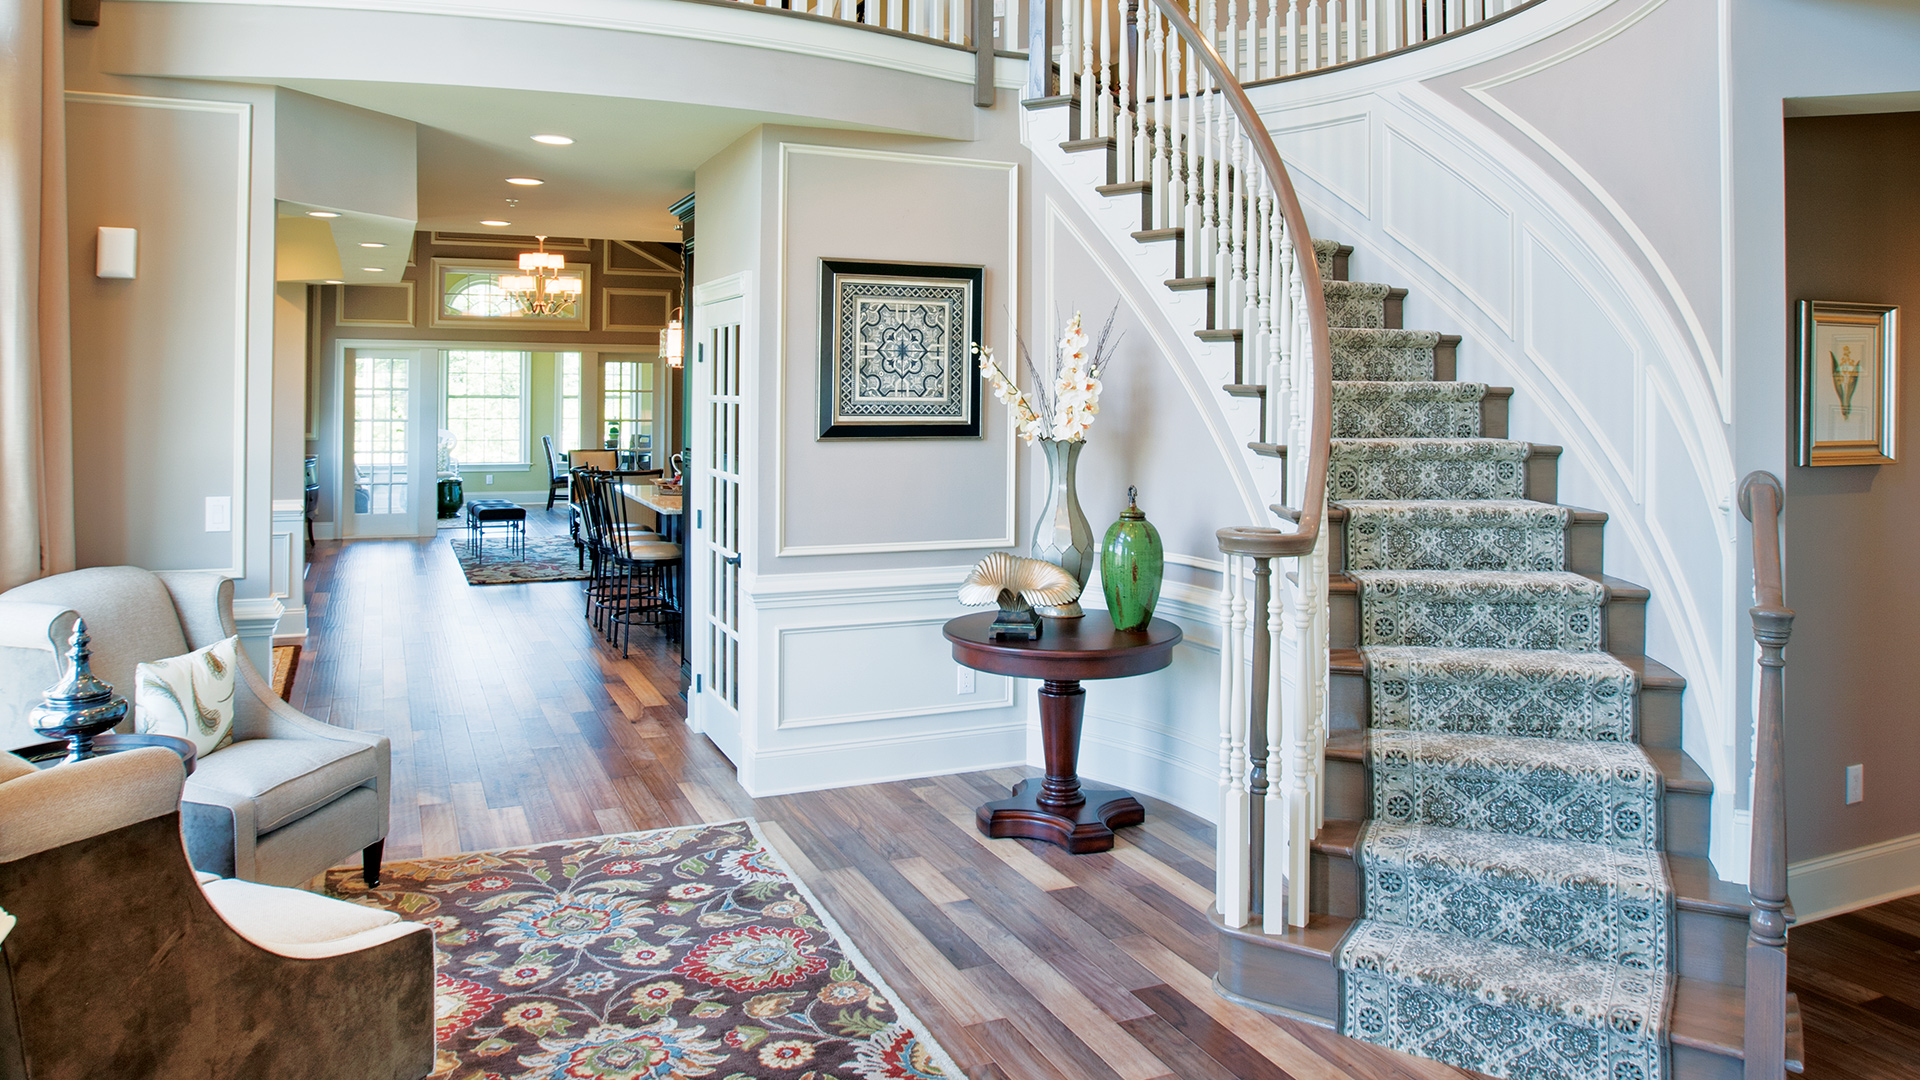 Newtown Square PA Carriage Homes for Sale | Liseter - The